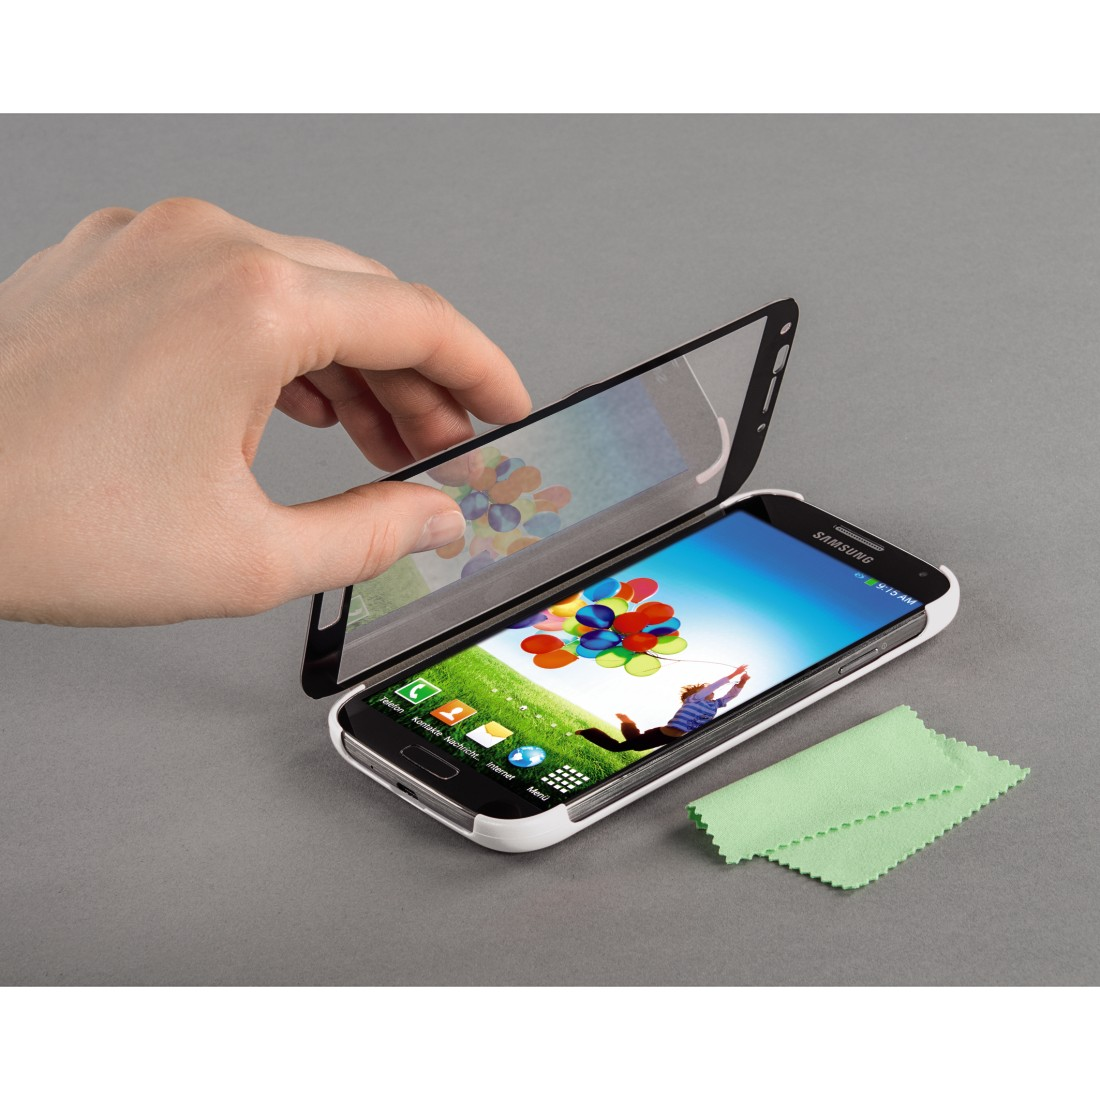 00124686 Hama Mirror Booklet Case For Samsung Galaxy S 4 White Miror Awx2 High Res Appliance 2